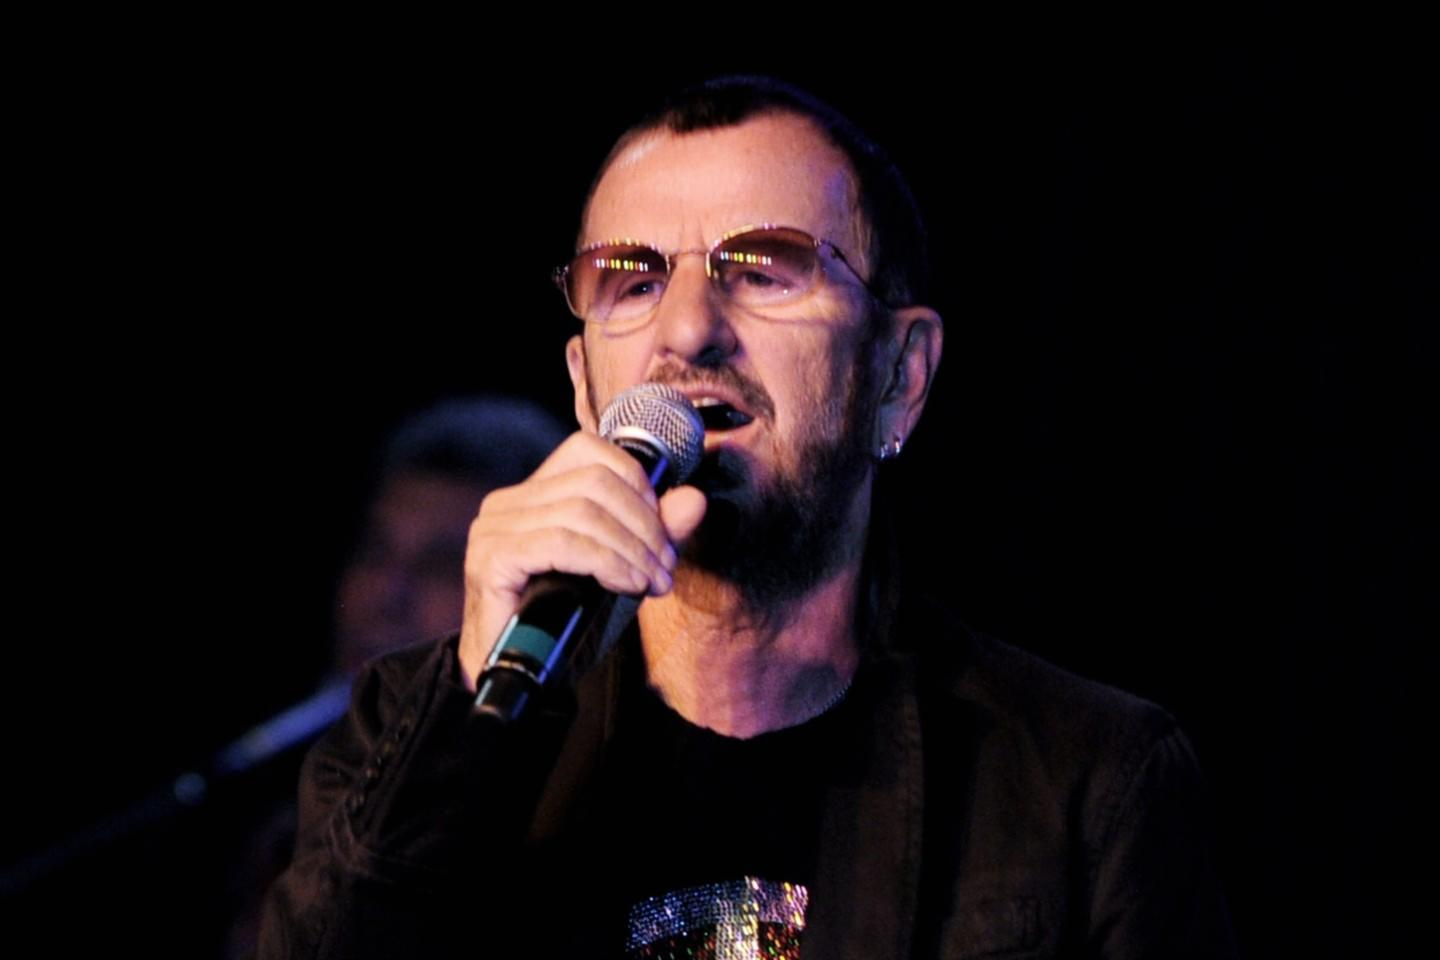 Ringo Starr Tickets | Ringo Starr Tour 2018 and Concert ...